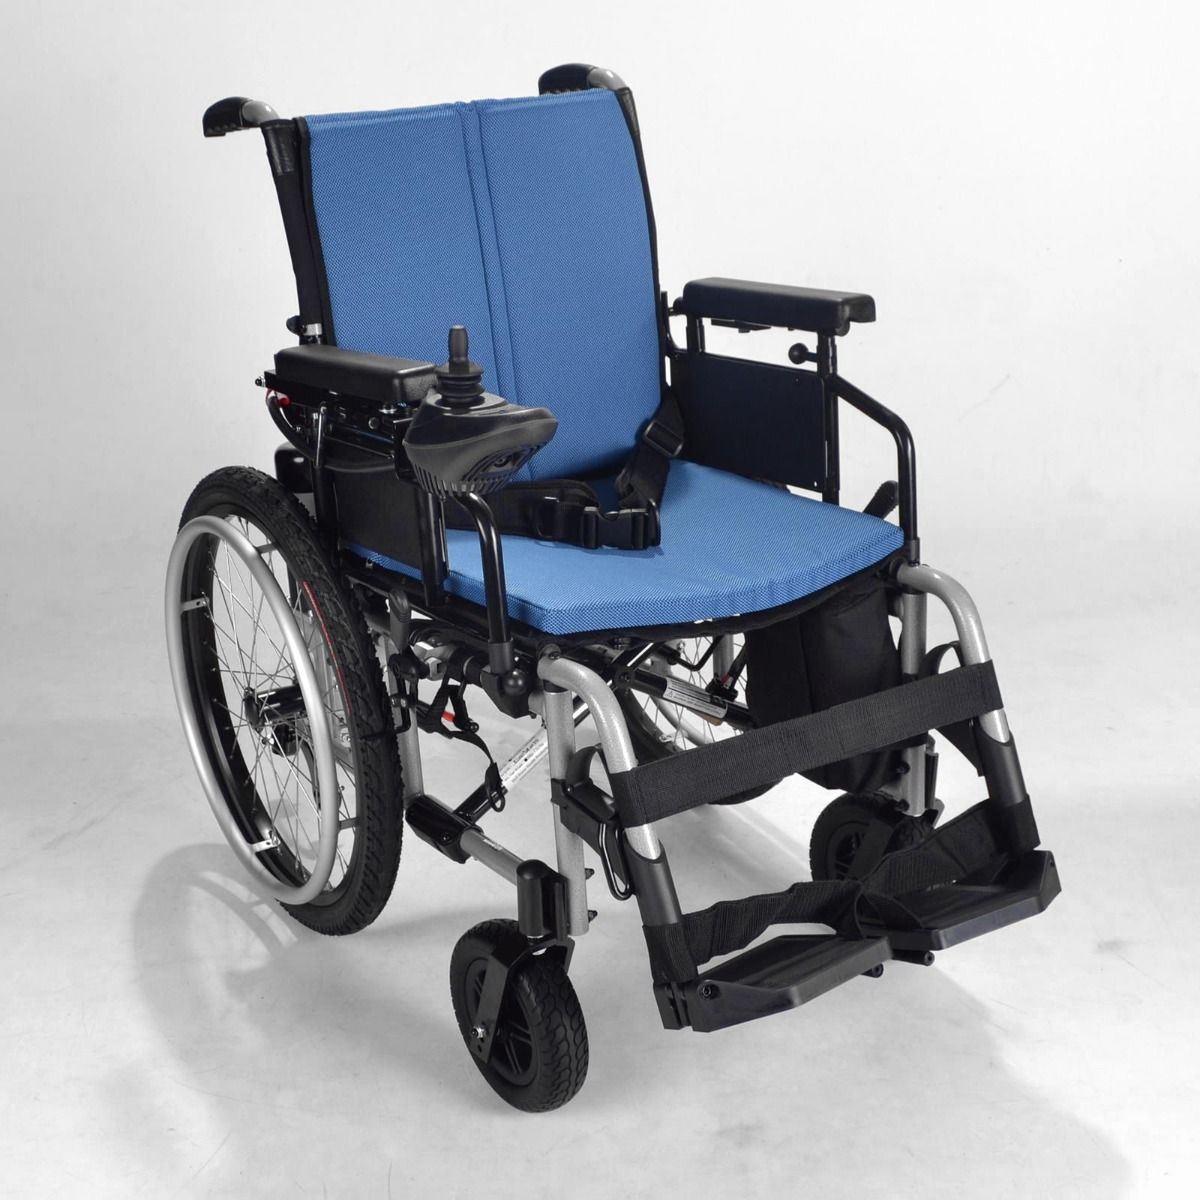 electric wheel chairs office chair adjustable arms wheelchair powerchair wheelchairs fenetic wellbeing